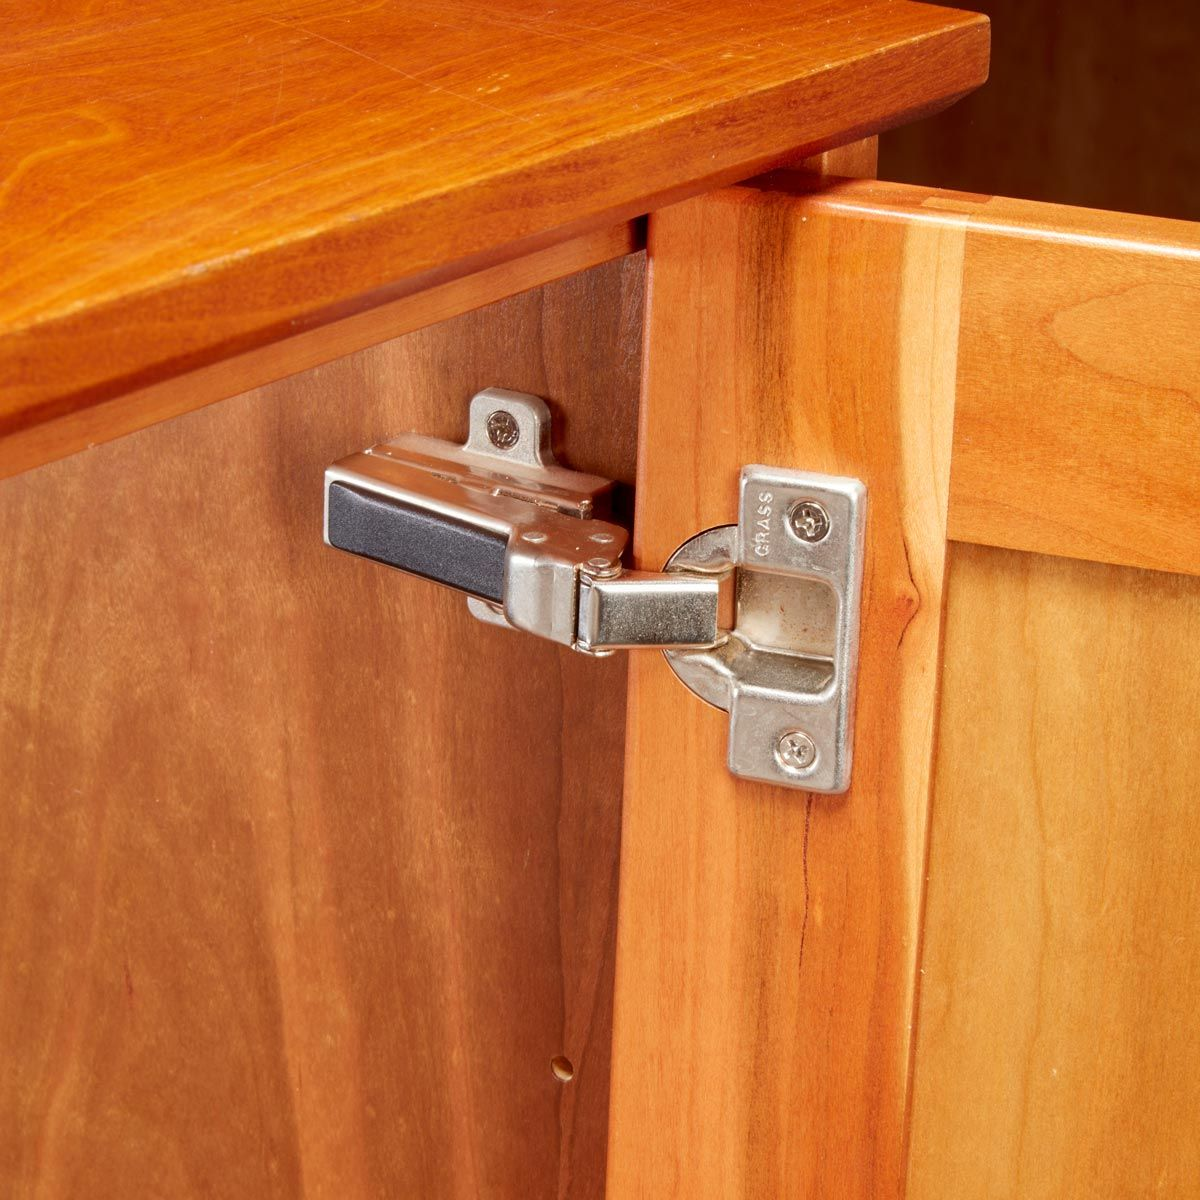 European Kitchen Cabinet Hinges All About Euro Hinges Diy Pinterest Woodworking